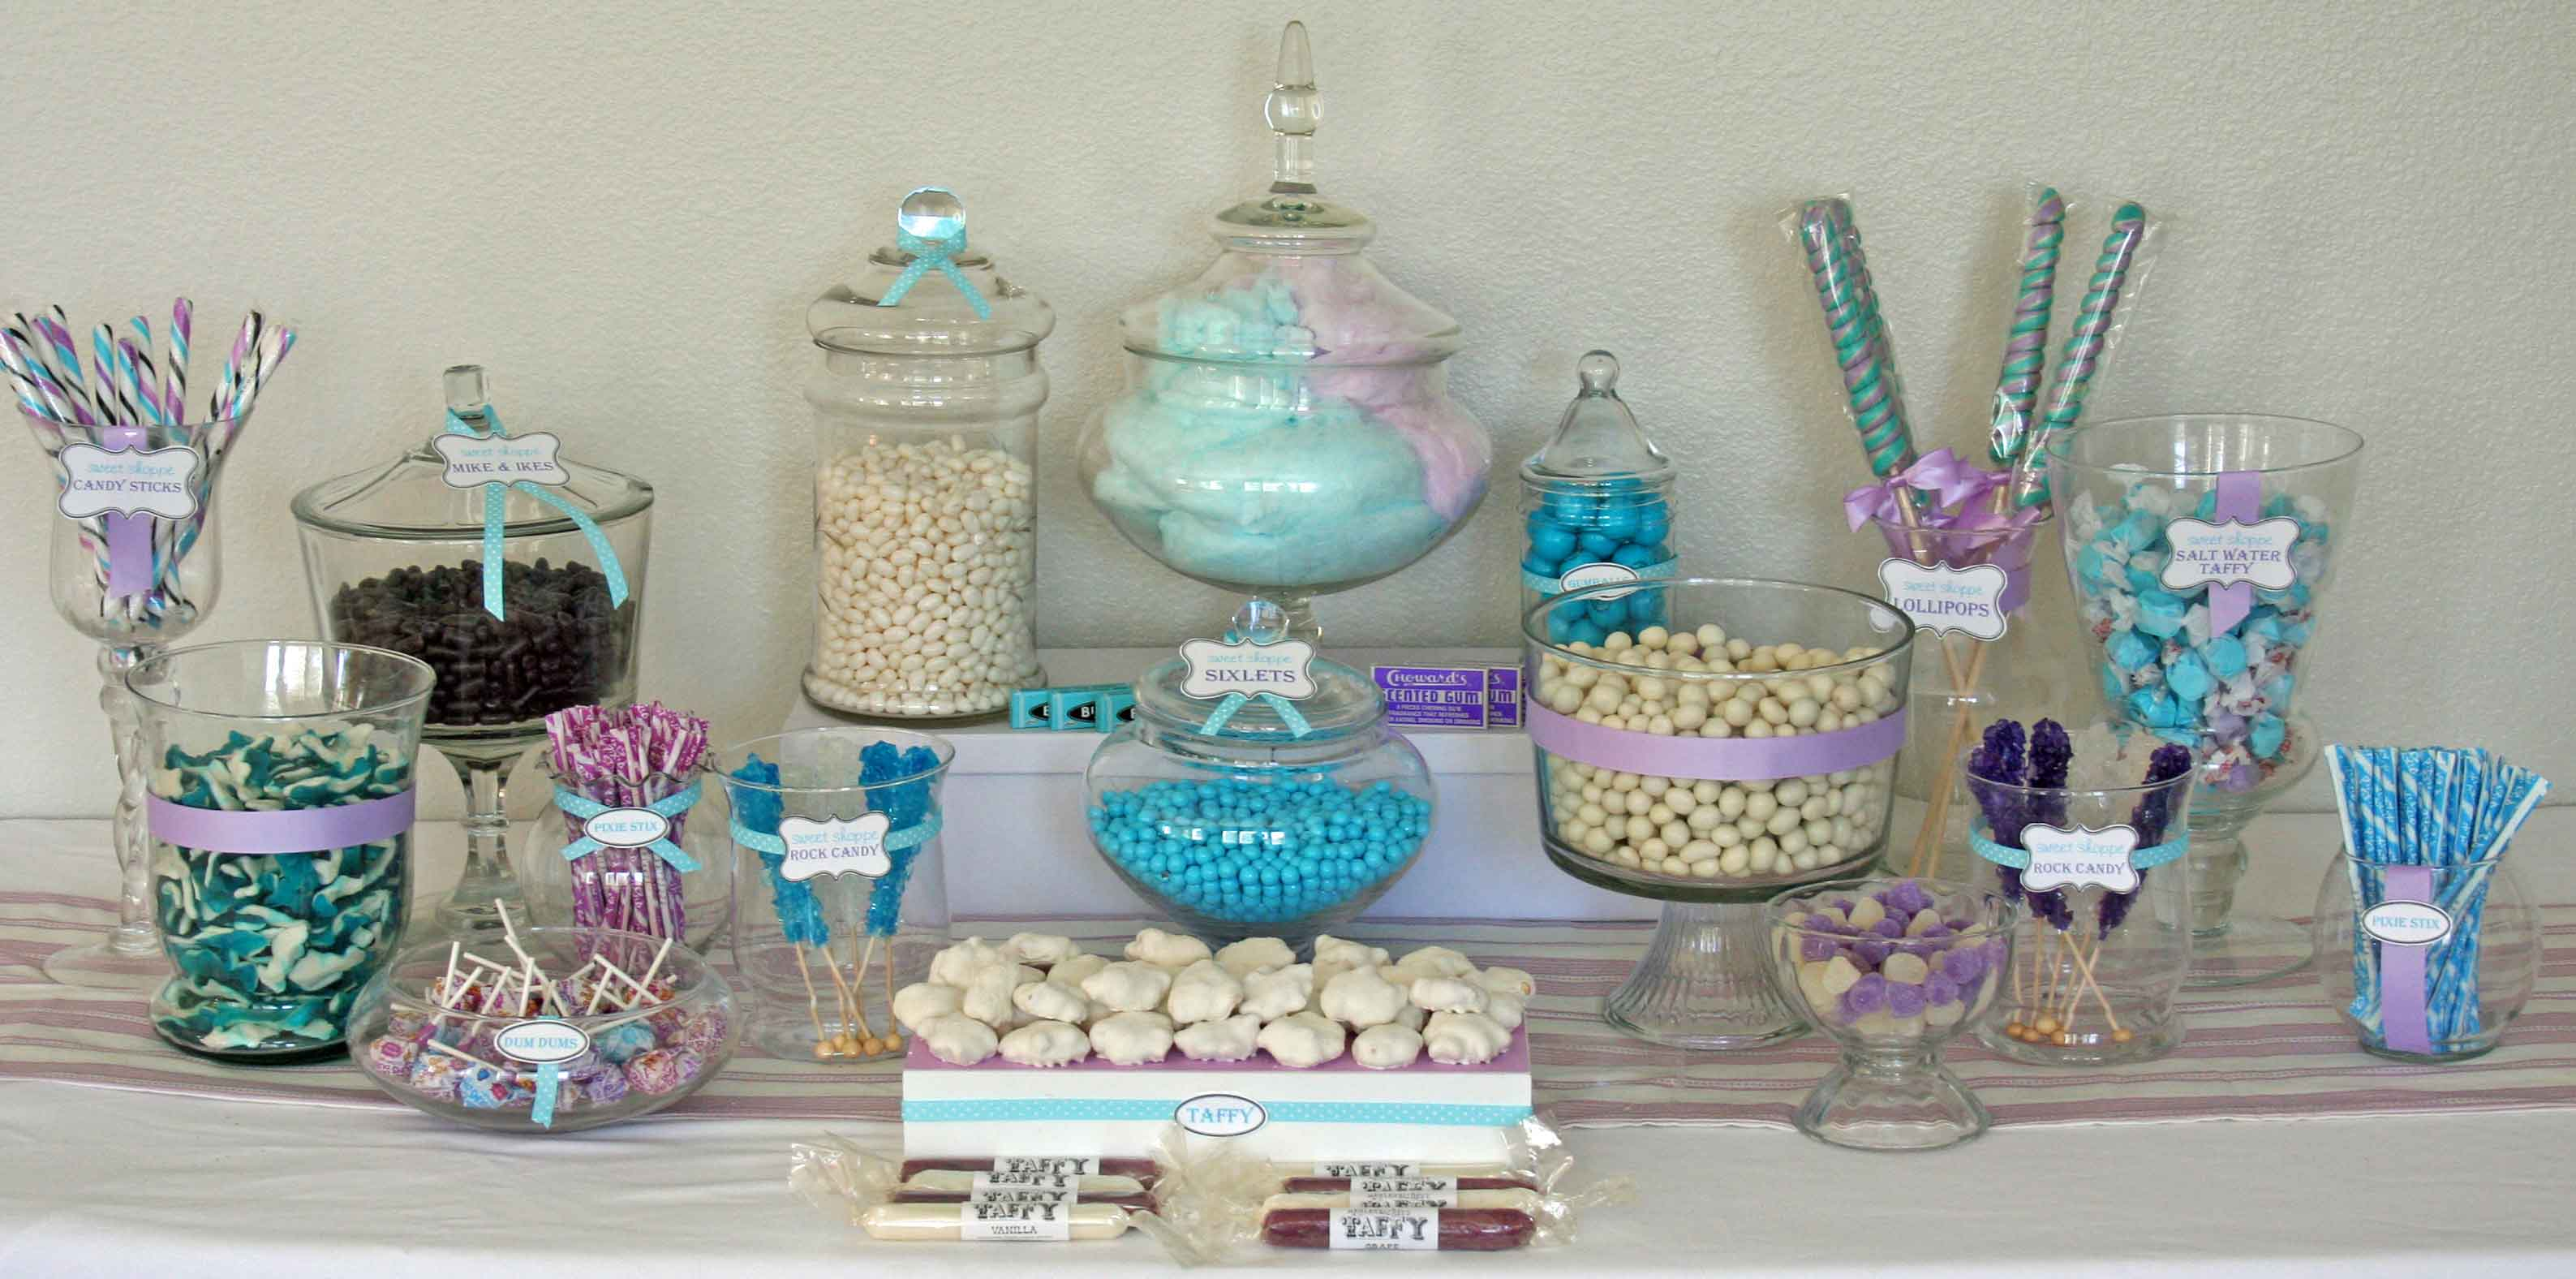 How to create the perfect diy candy buffet my love of style my blue purple and white candy buffet solutioingenieria Images